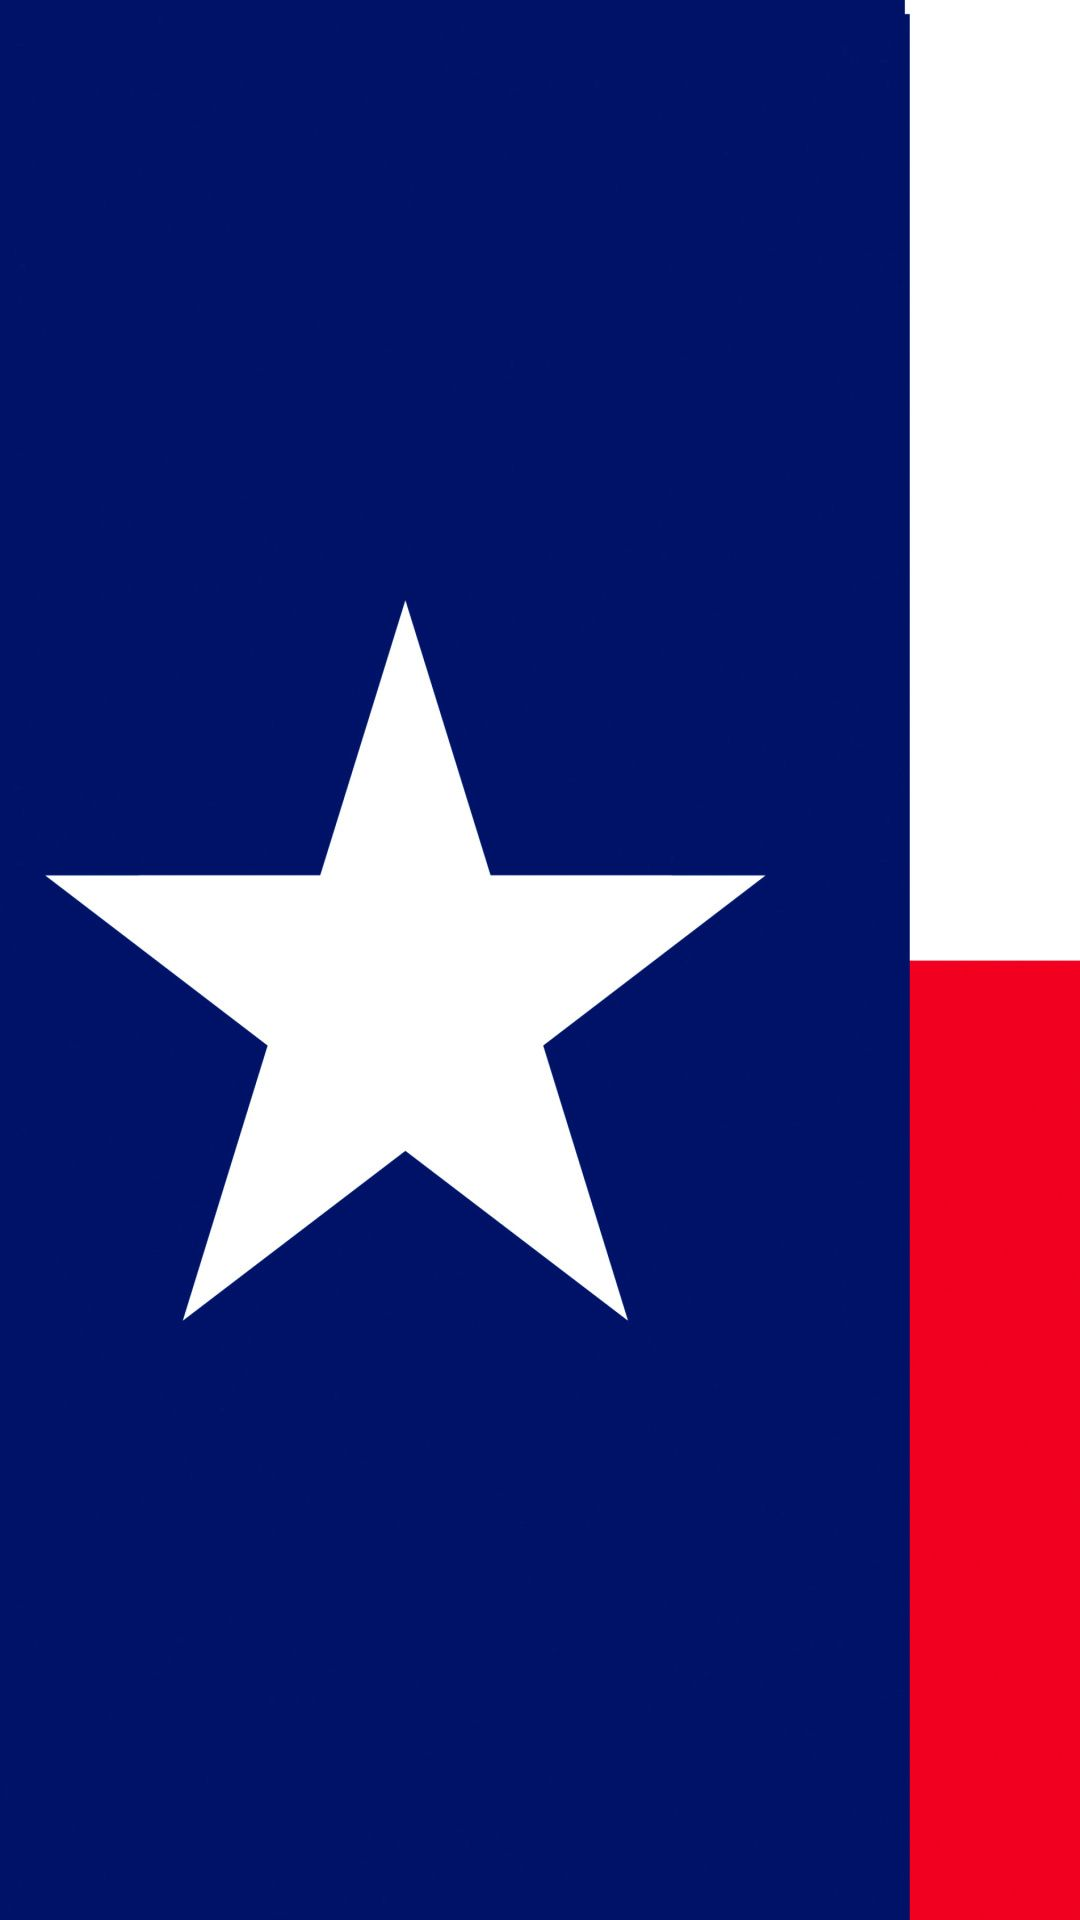 Texas Flag Iphone Wallpapers Top Free Texas Flag Iphone